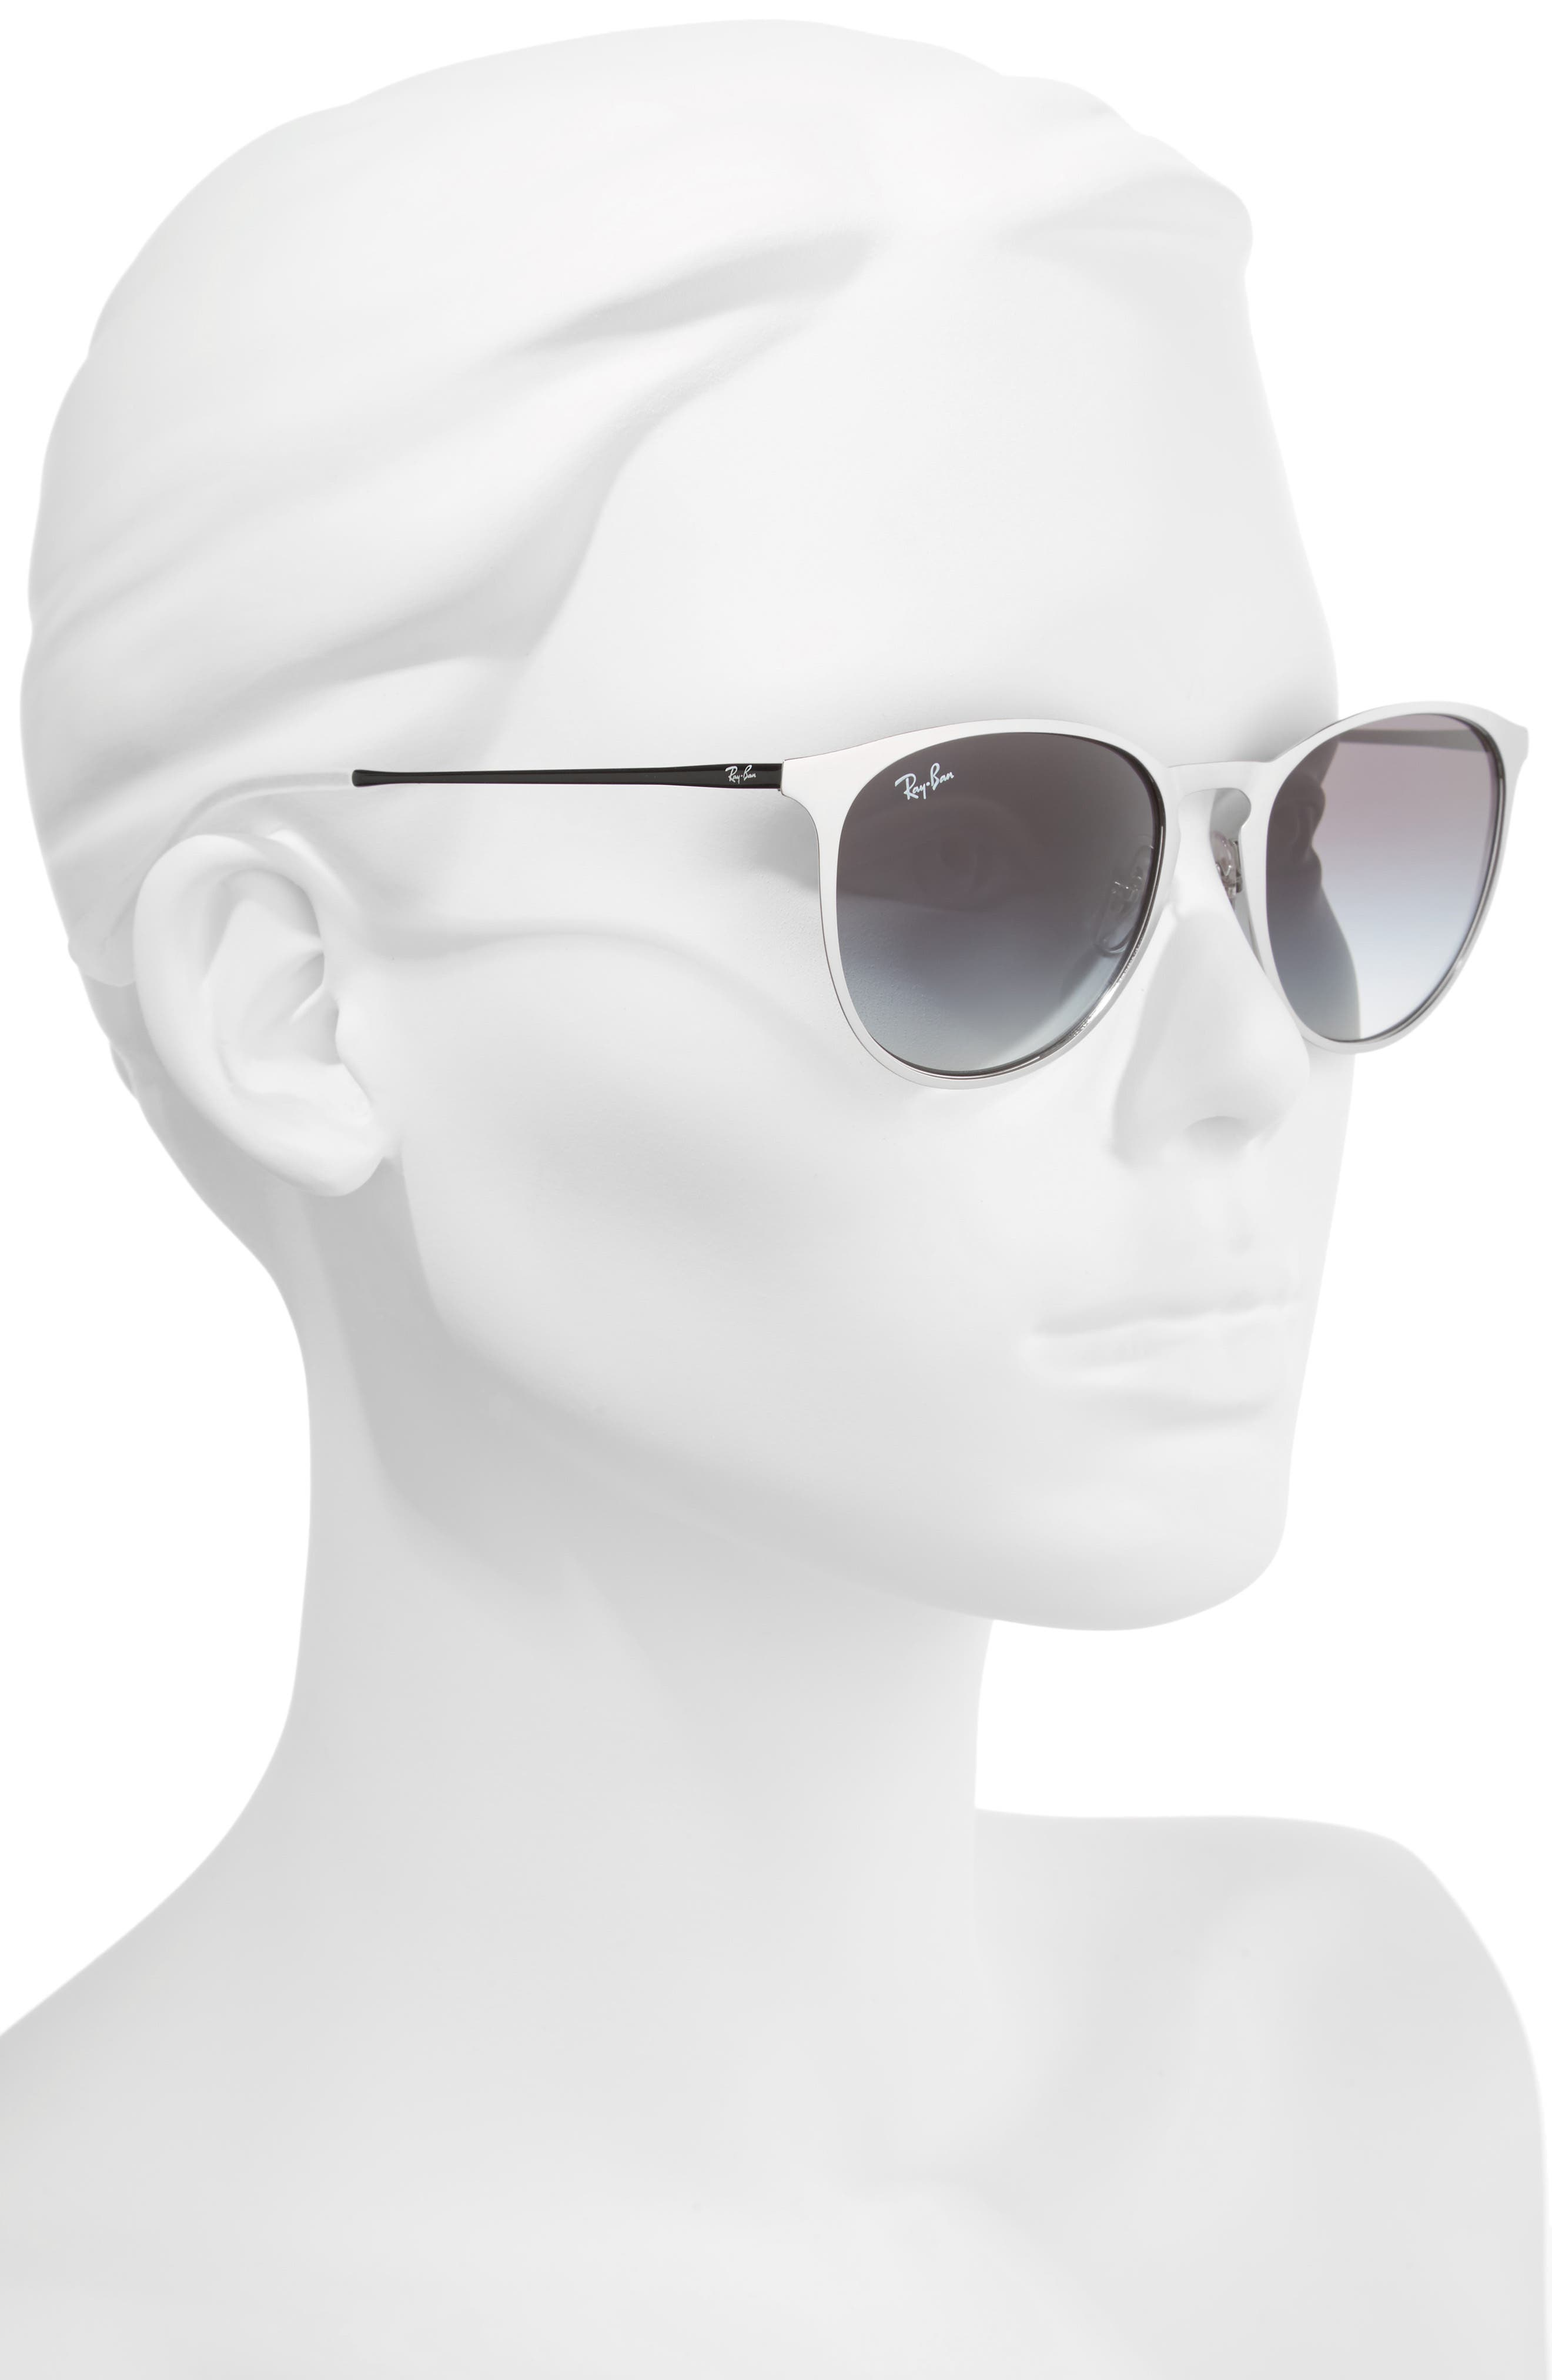 'Youngster' 54mm Sunglasses,                             Alternate thumbnail 2, color,                             040